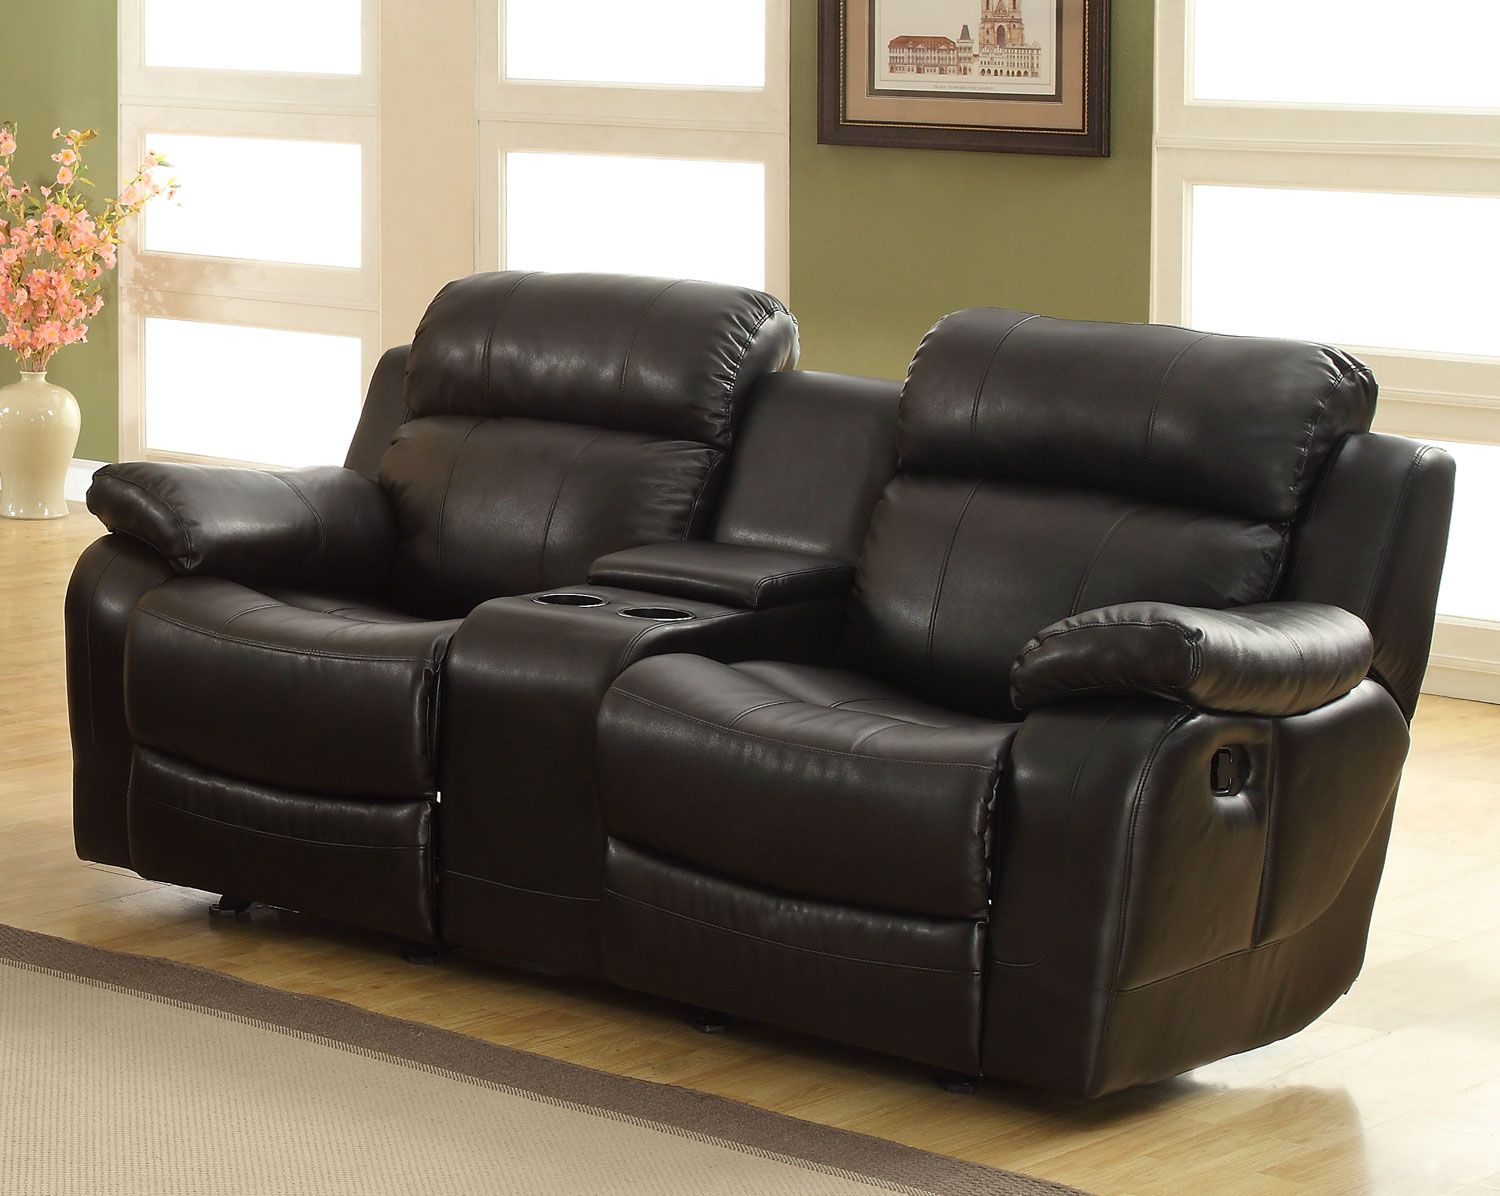 Black Reclining Sofa With Console Charleston Fire Homelegance Marille Love Seat Glider Recliner Center